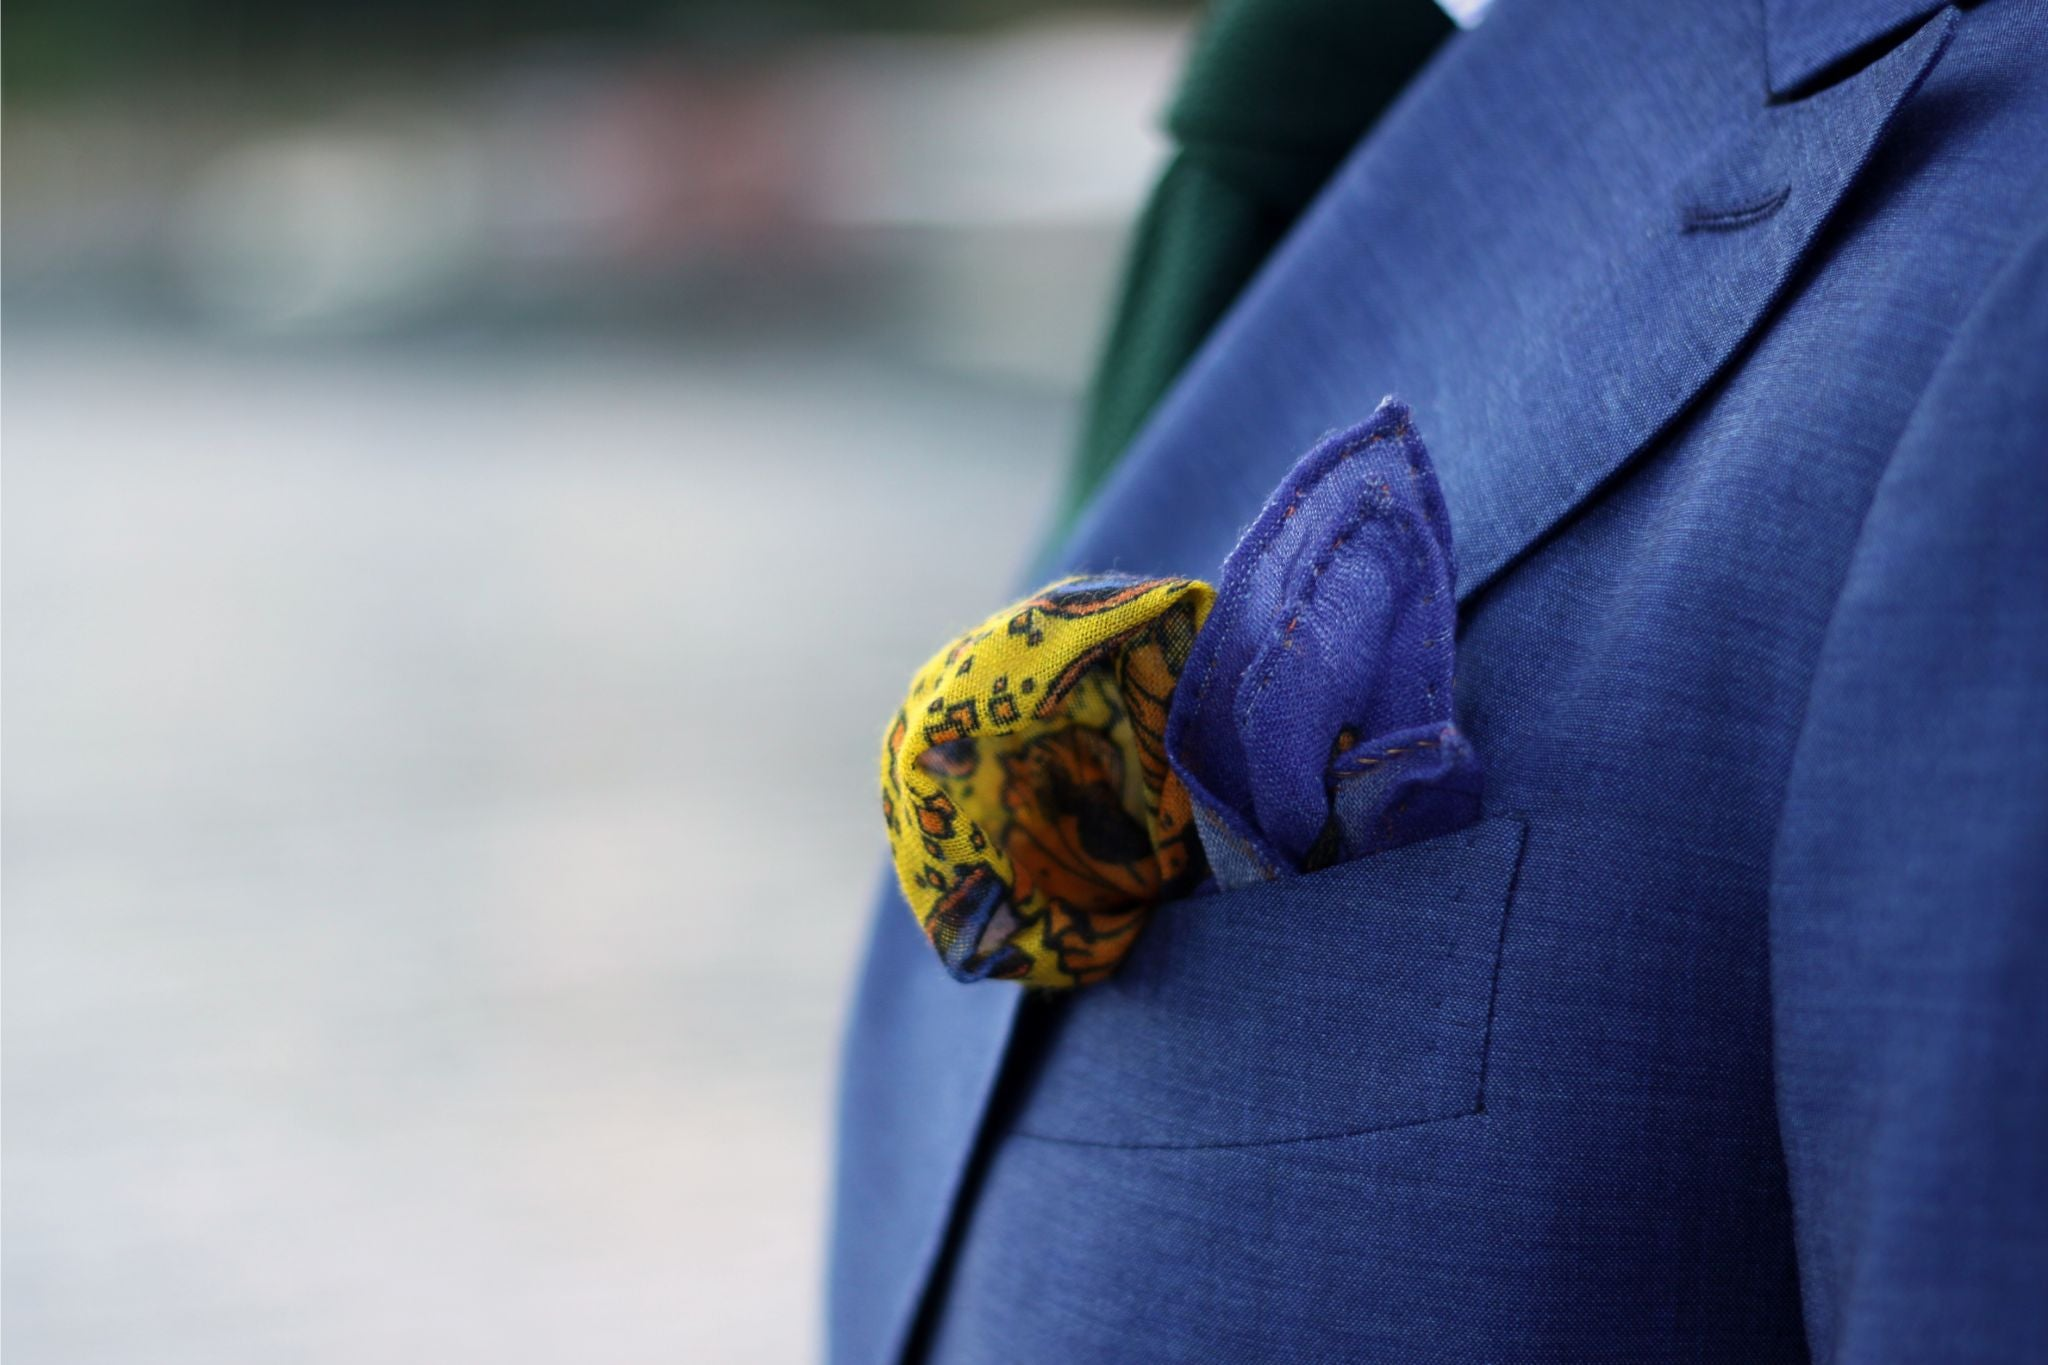 Royal blue double-breasted suit - make it more subtle with soft hues in your pocket square